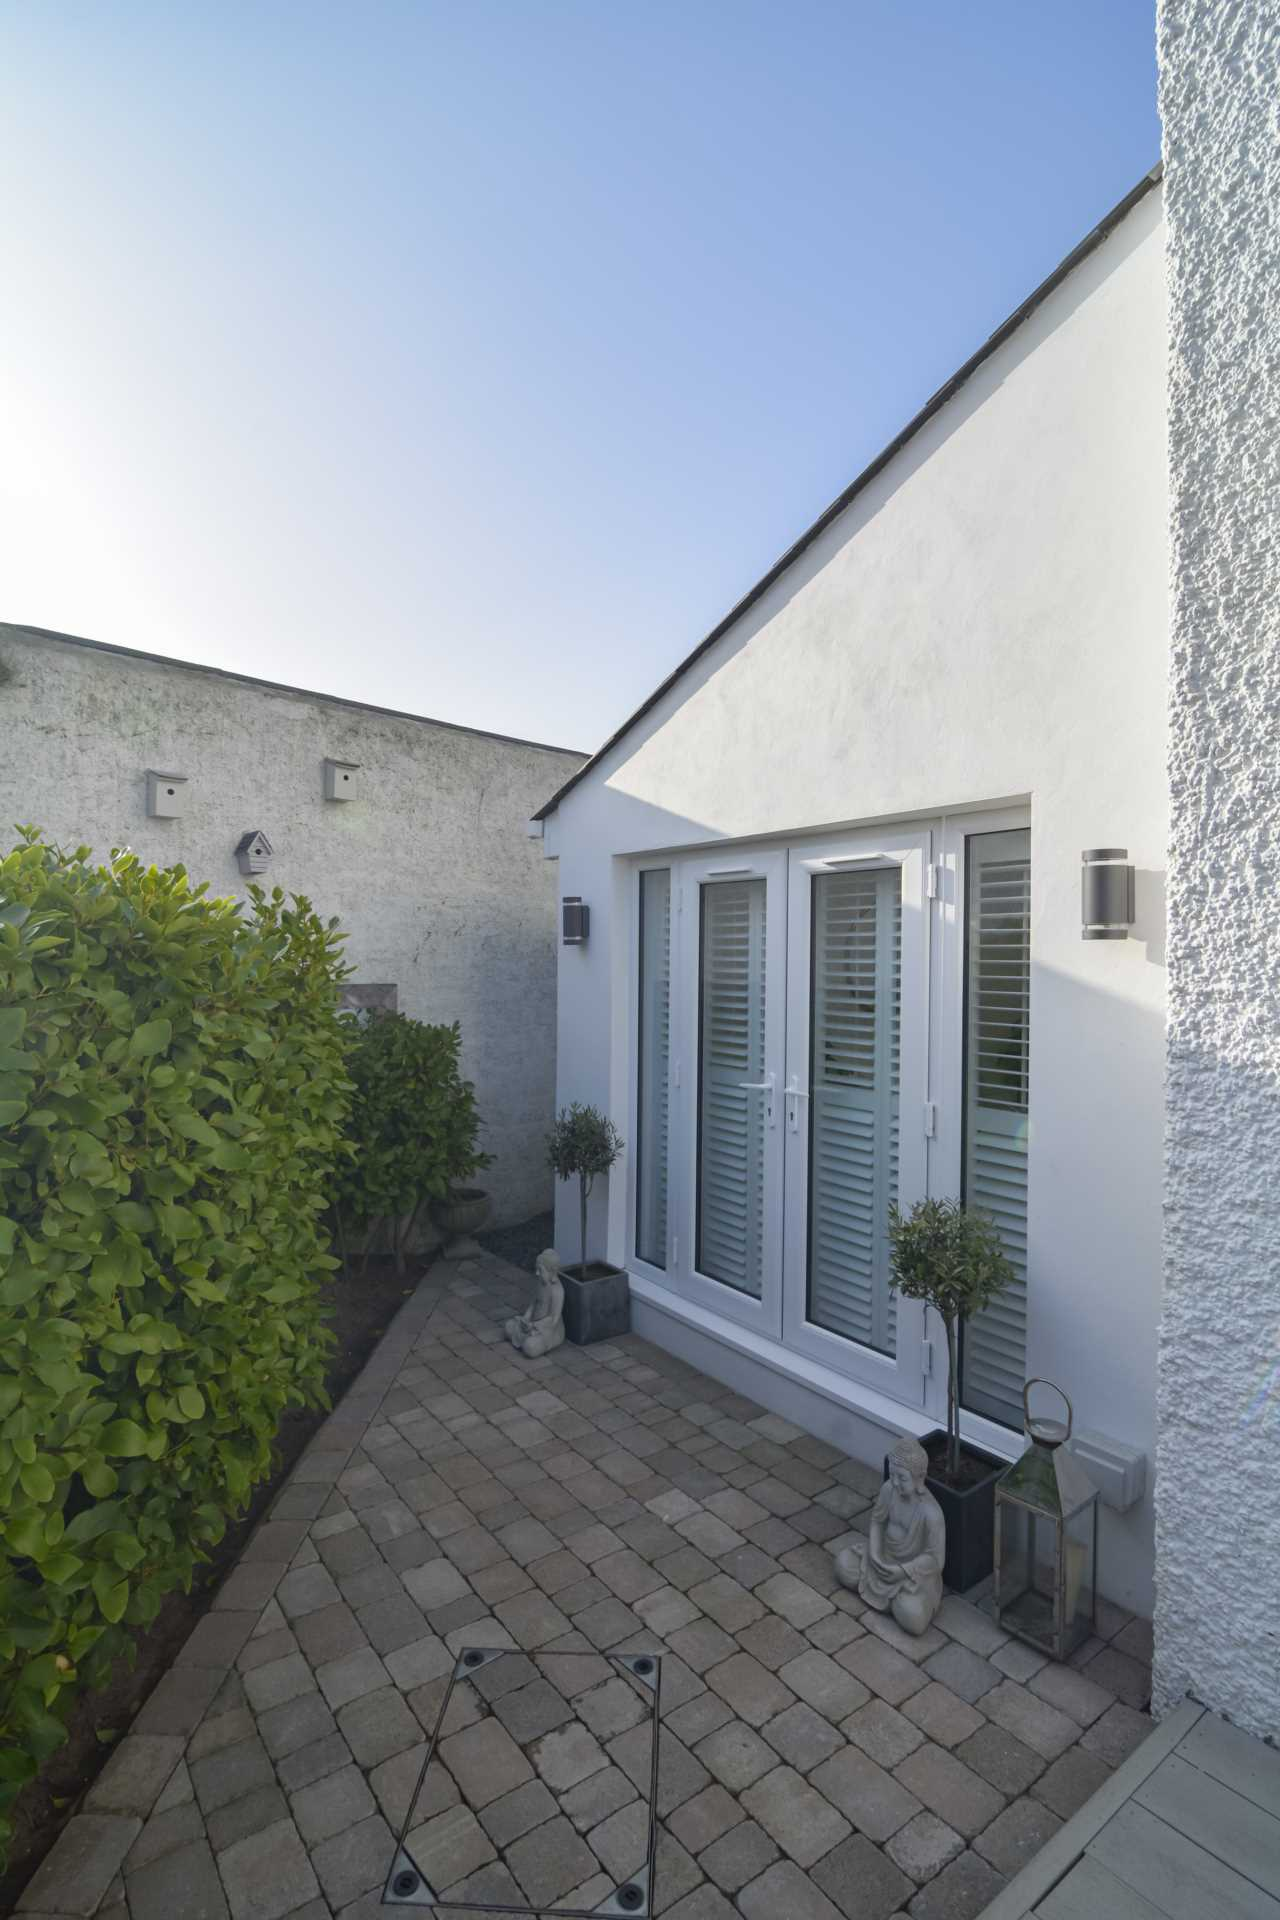 2/3 Bedroom property in St Clements, Image 5